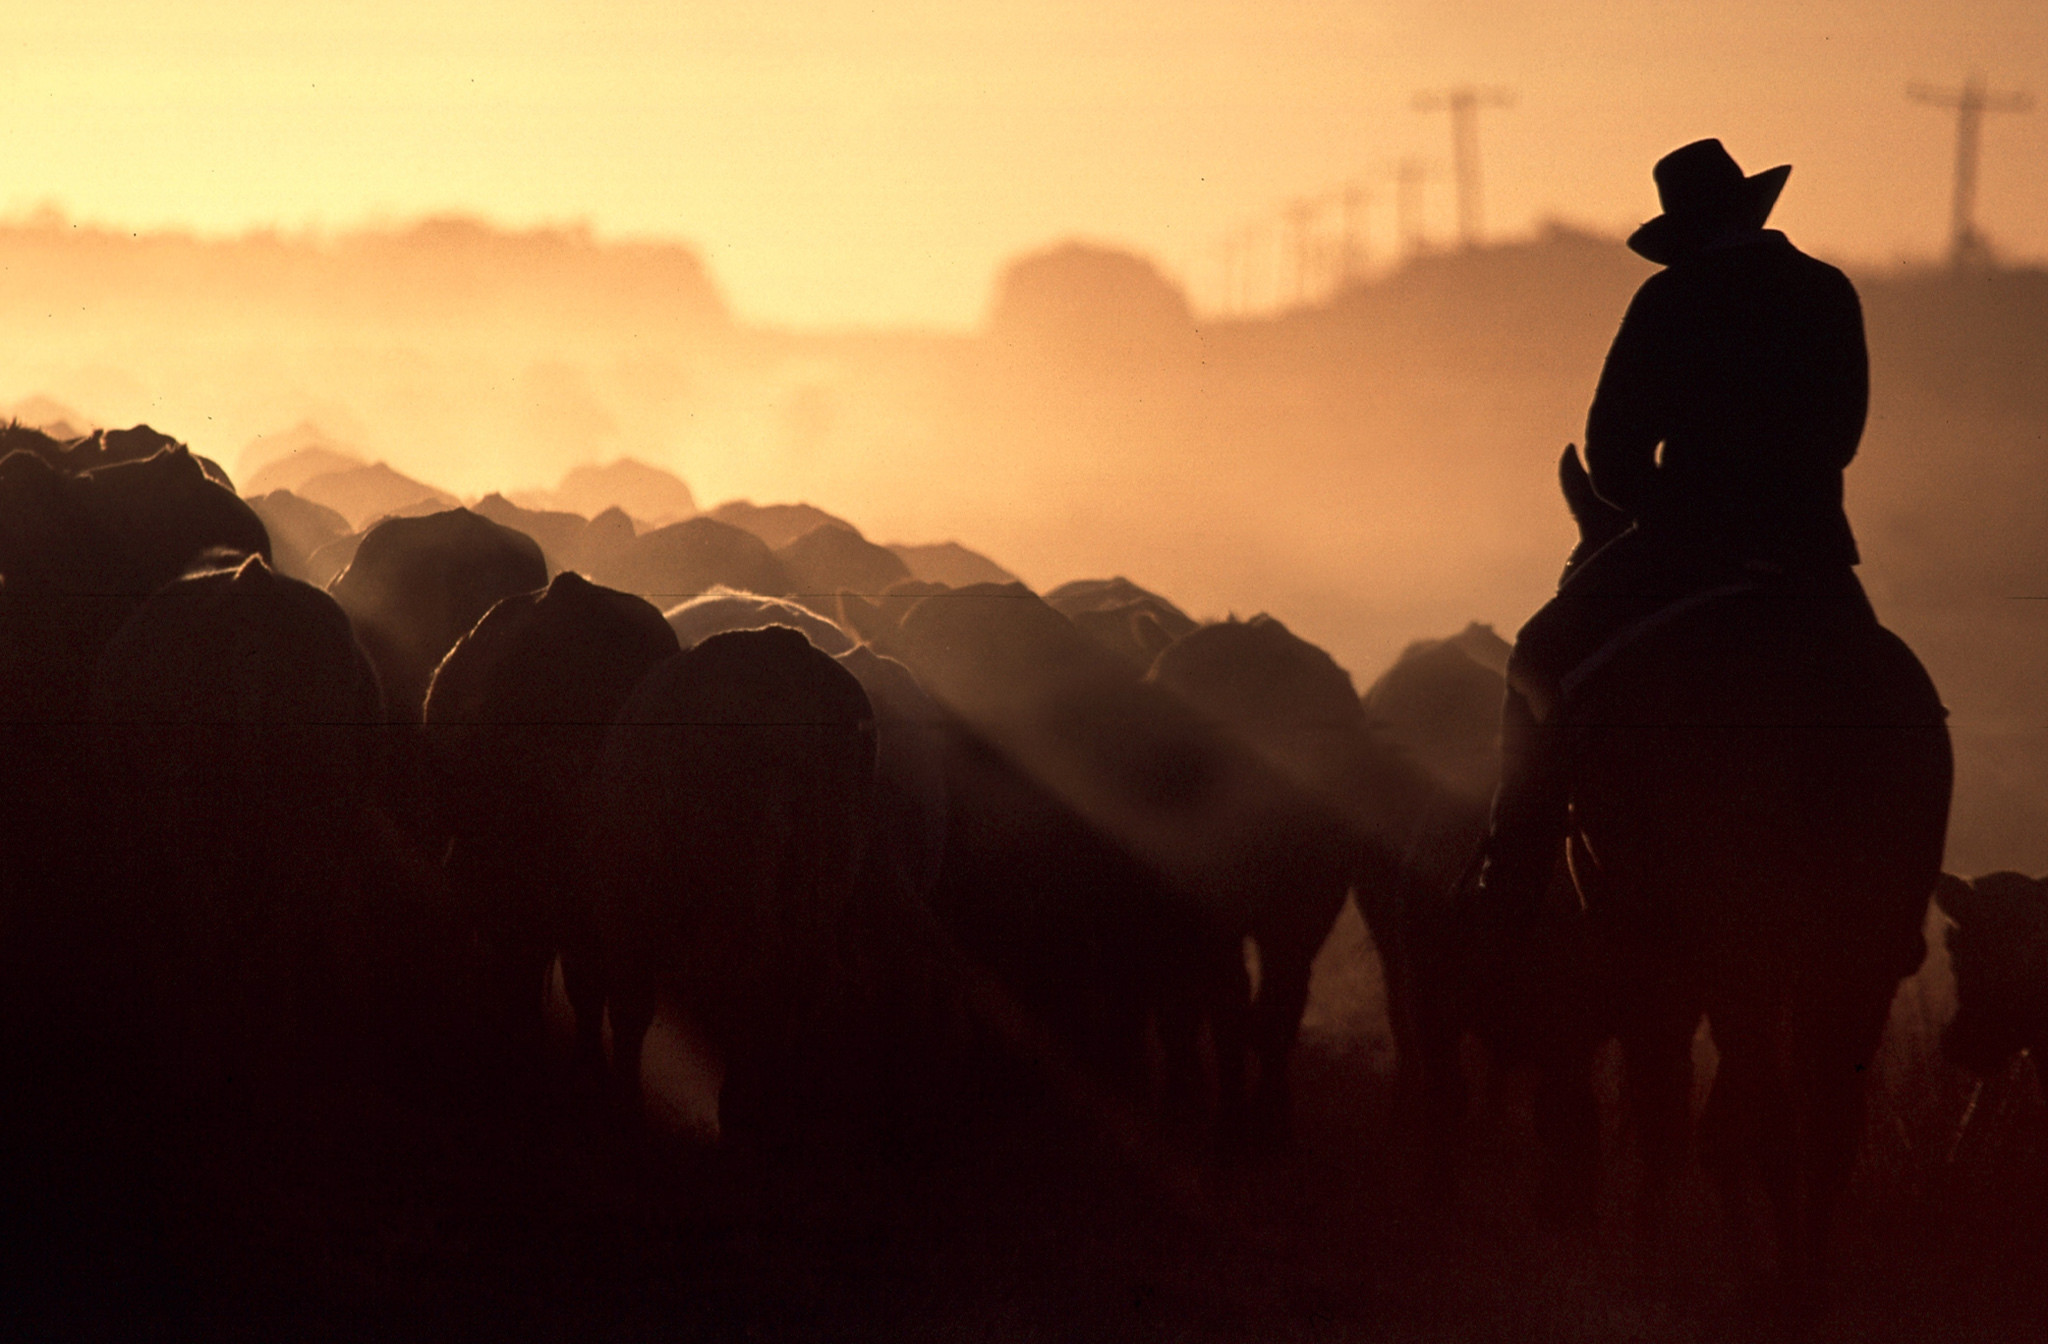 a farmer rides his cattle in a silhouette picture